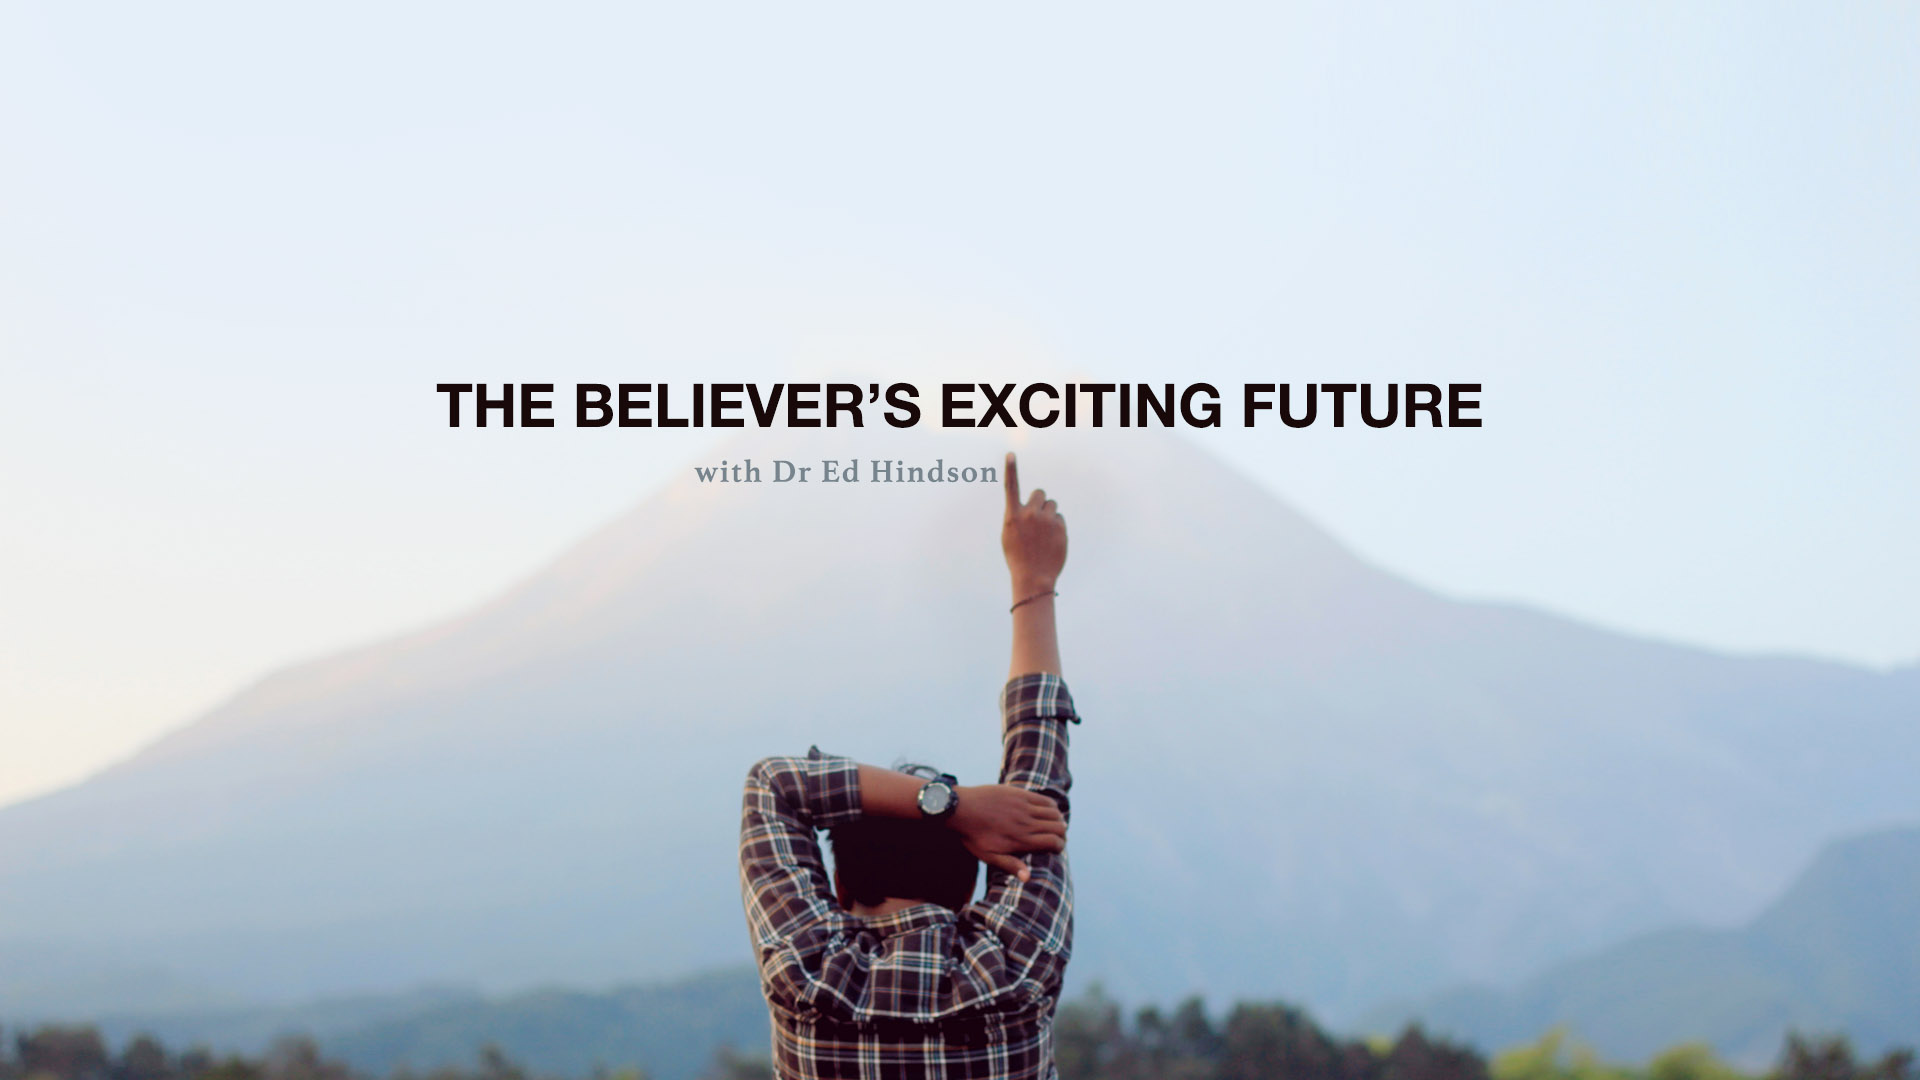 The Believer's Exciting Future